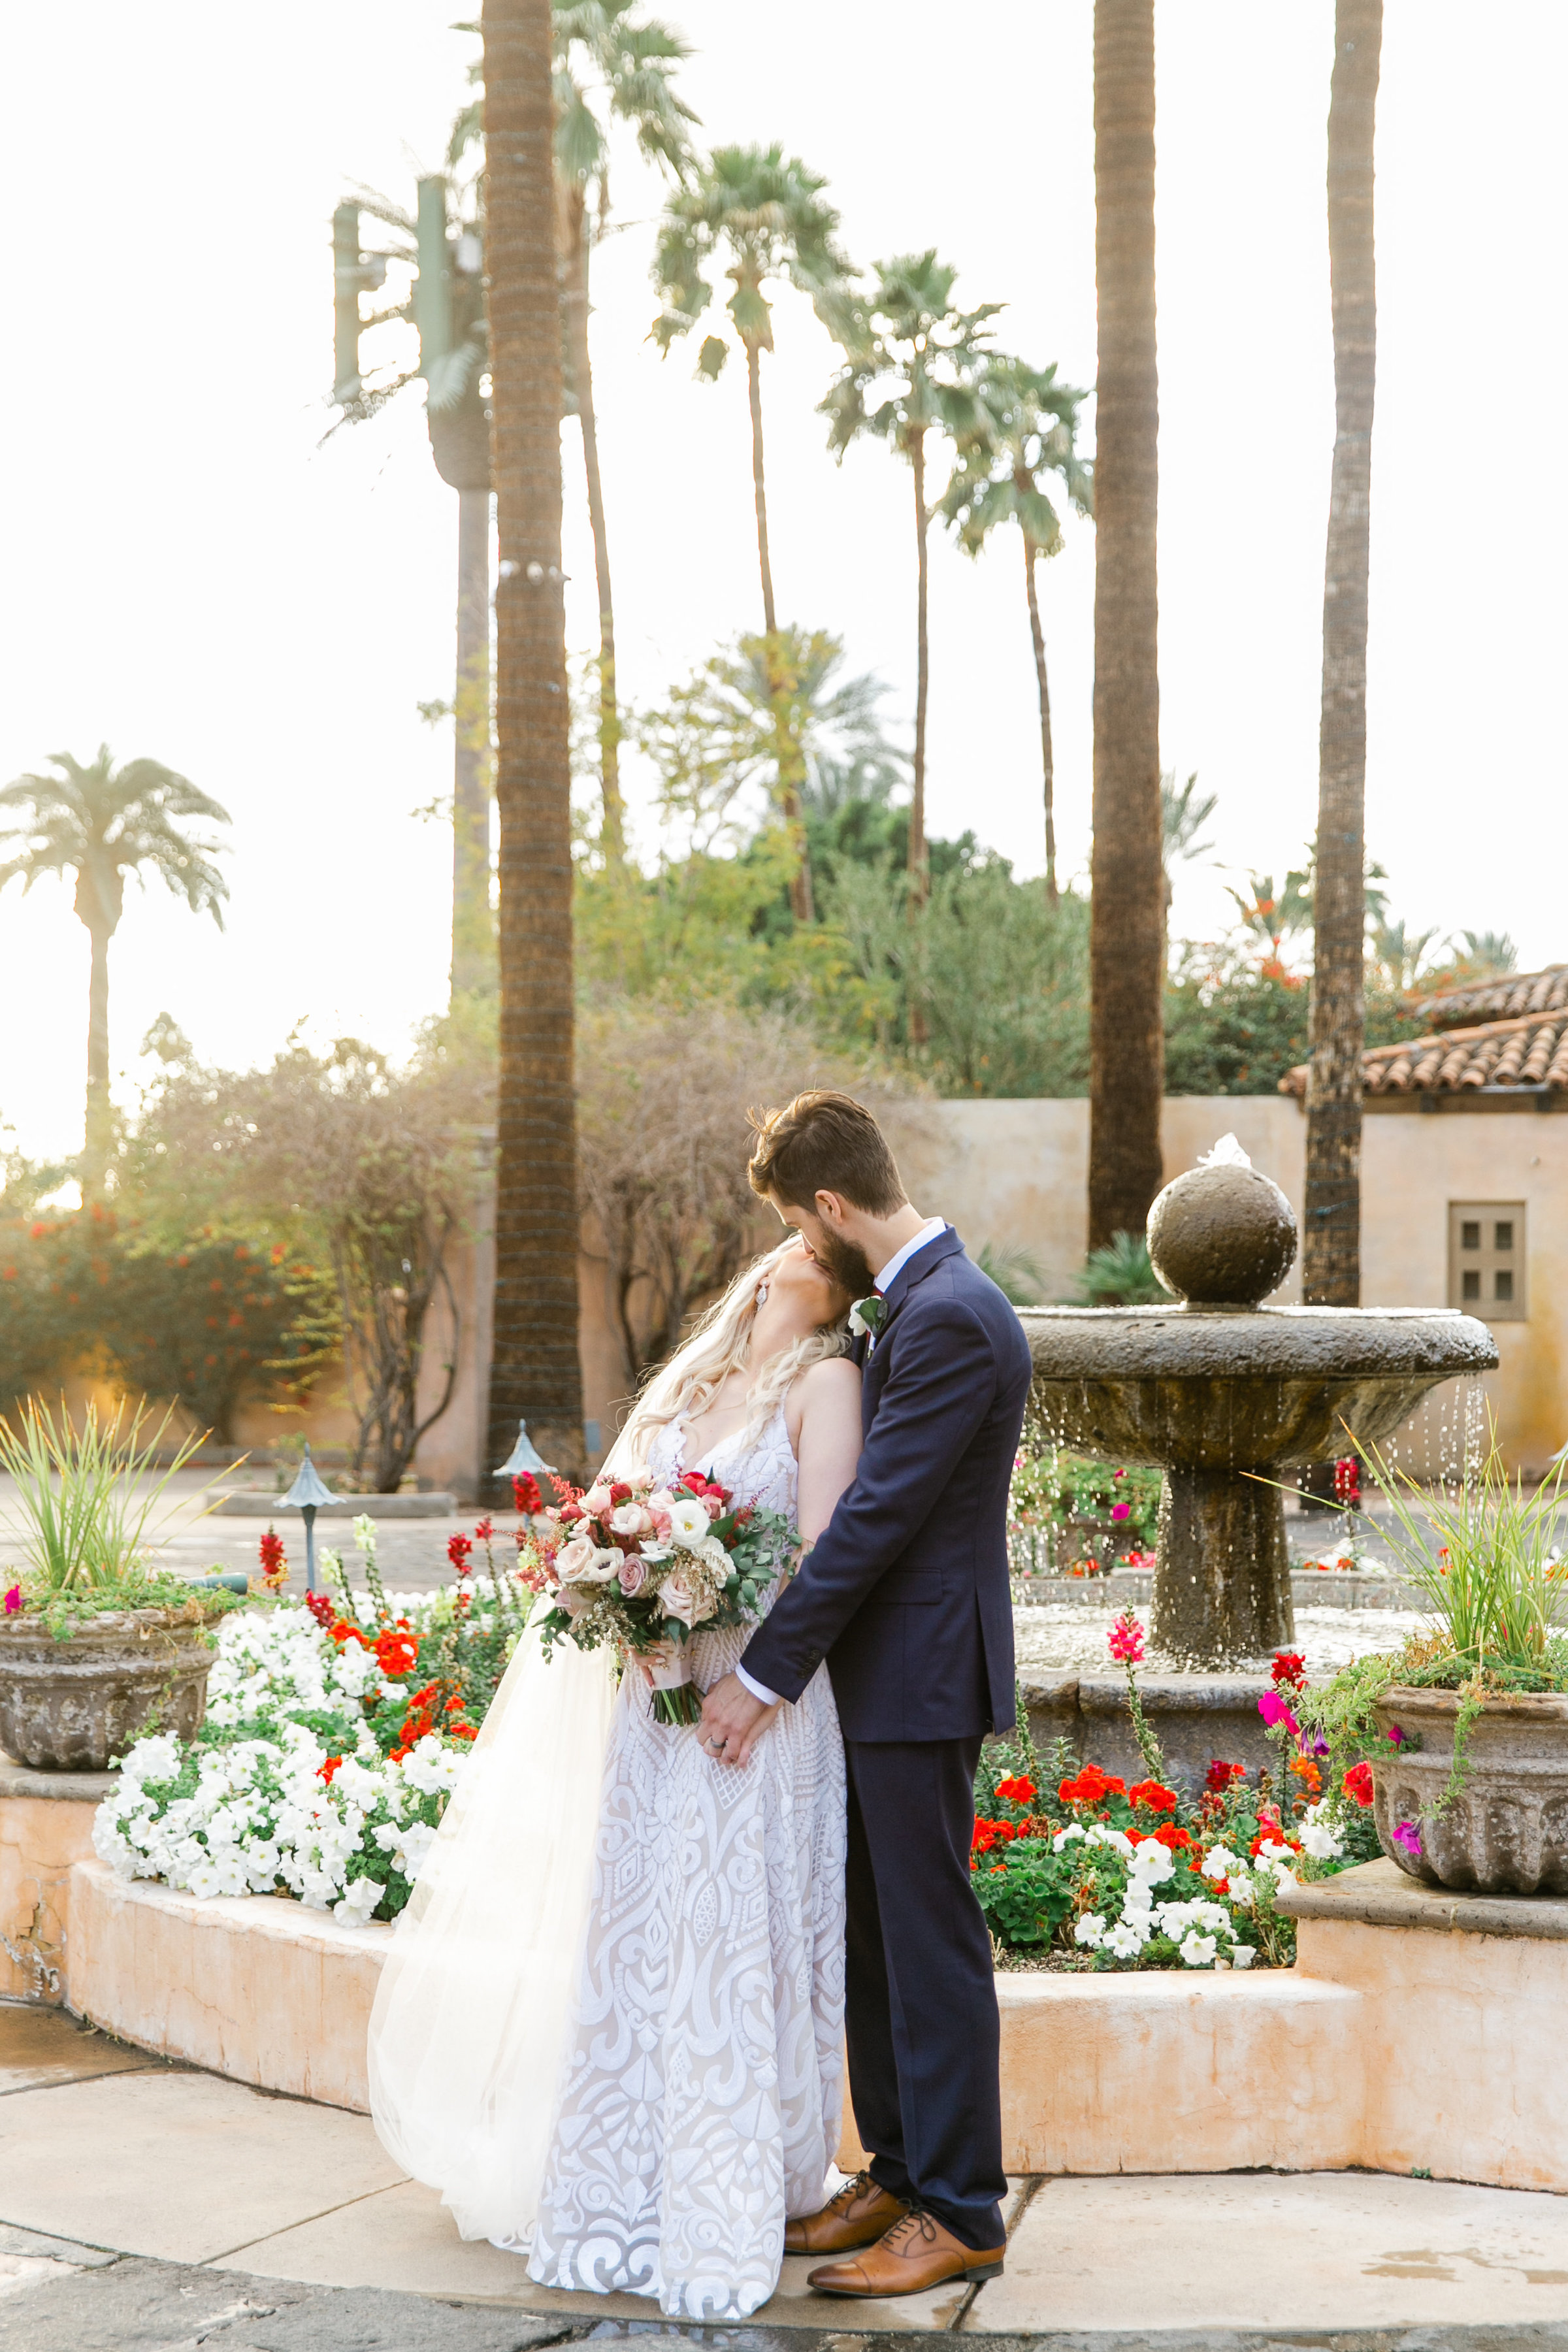 Karlie Colleen Photography - The Royal Palms Wedding - Some Like It Classic - Alex & Sam-538